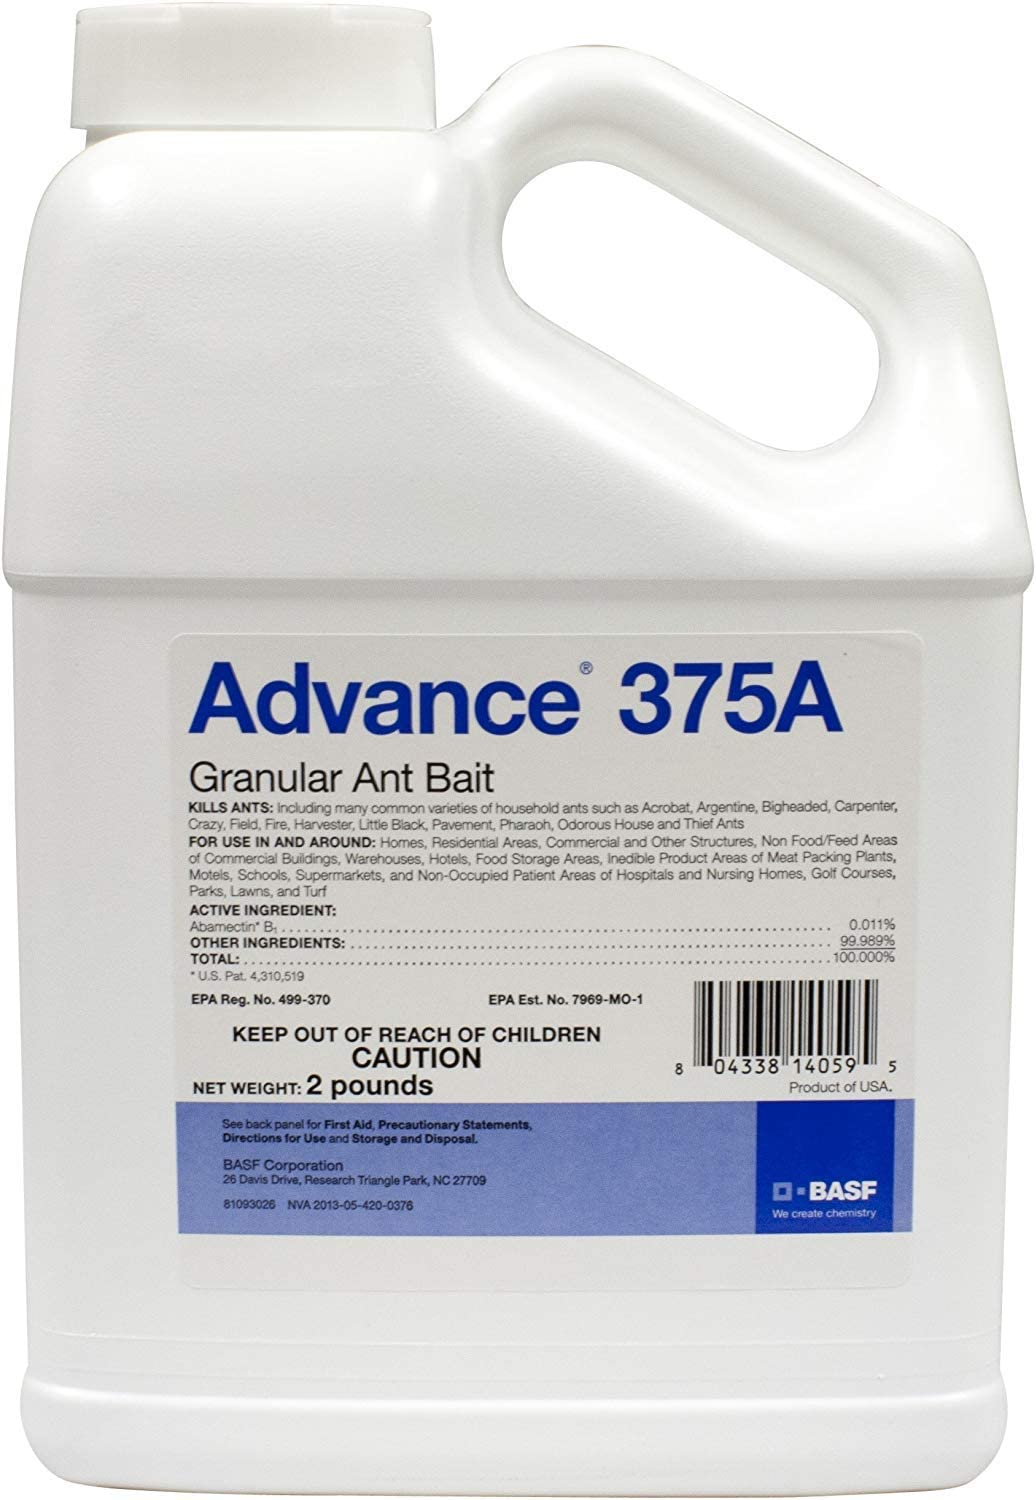 BASF 10341 Advance 375A excellence Ant Granular New Free Shipping Bait